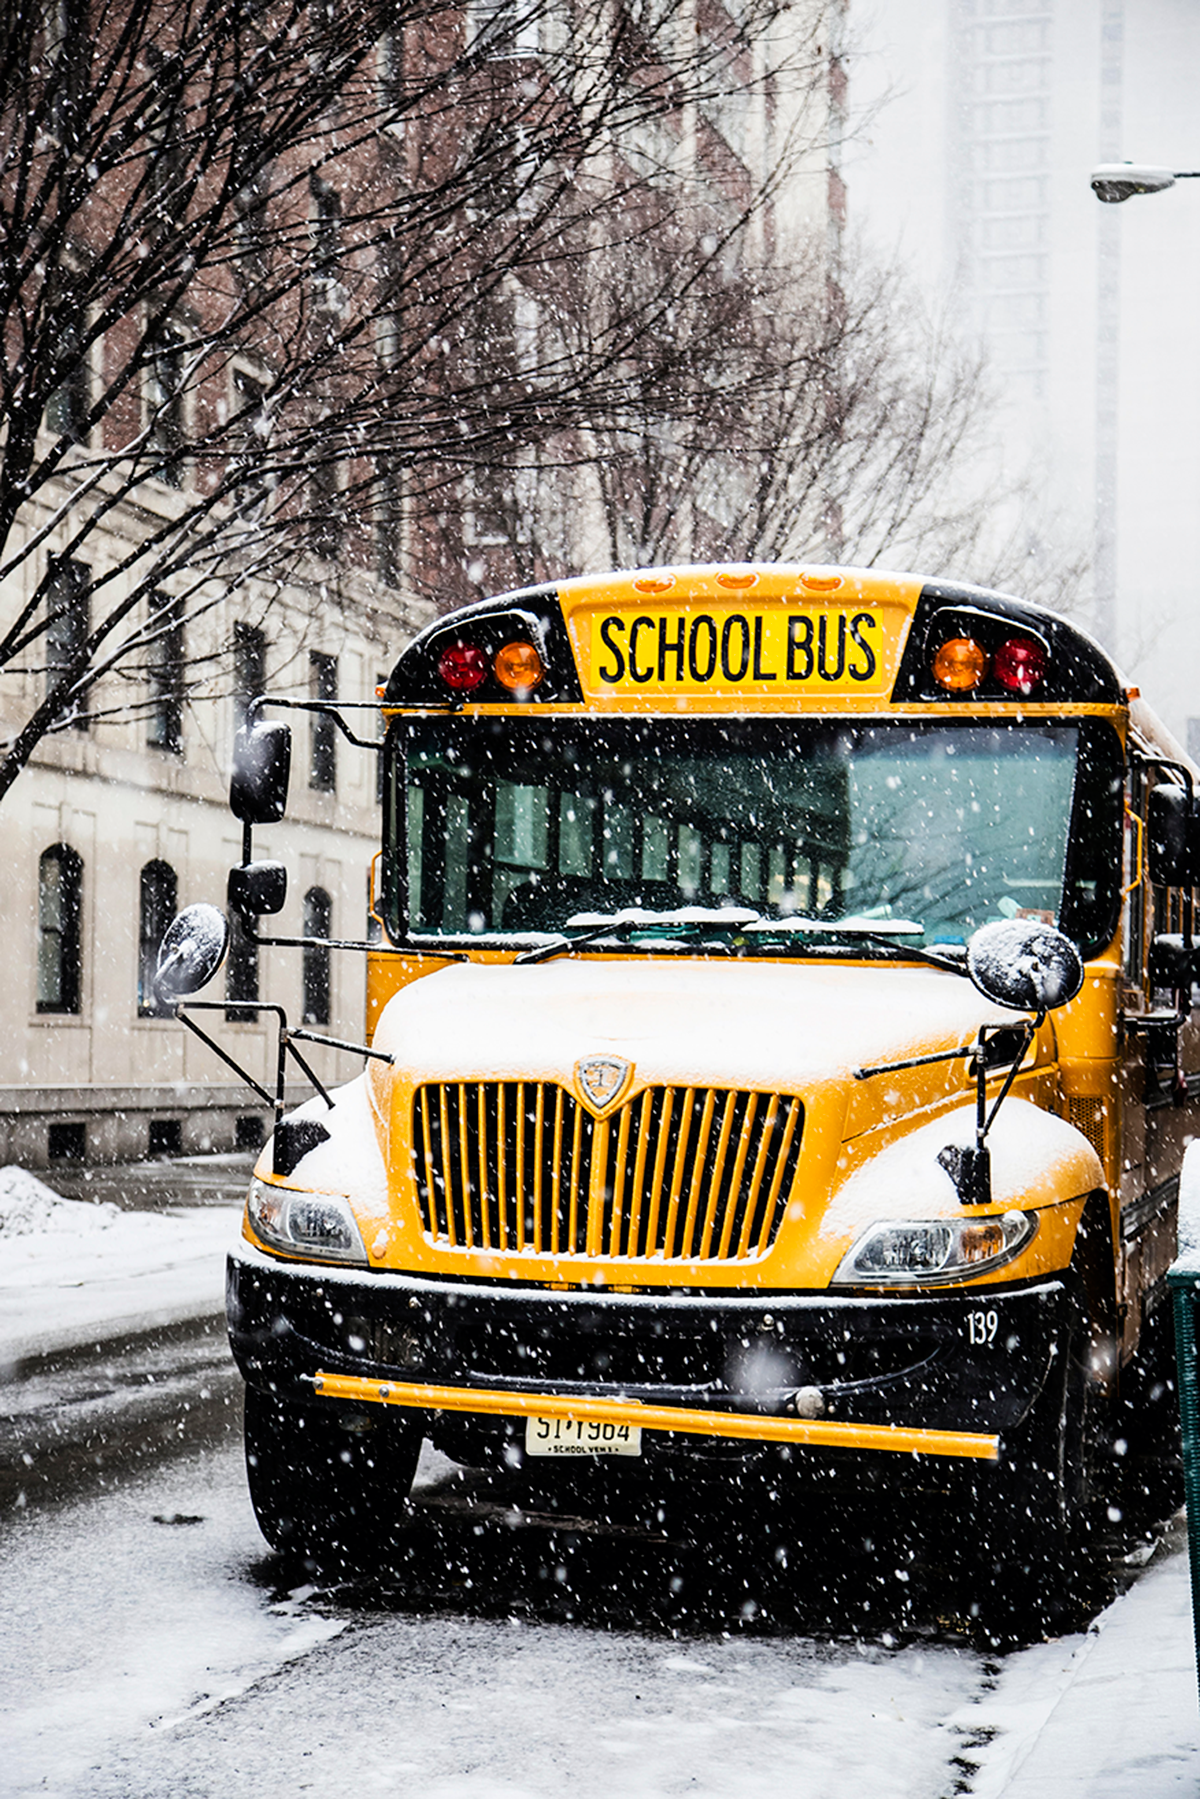 Beautiful photos of New York City February 2015 School Bus under the snow